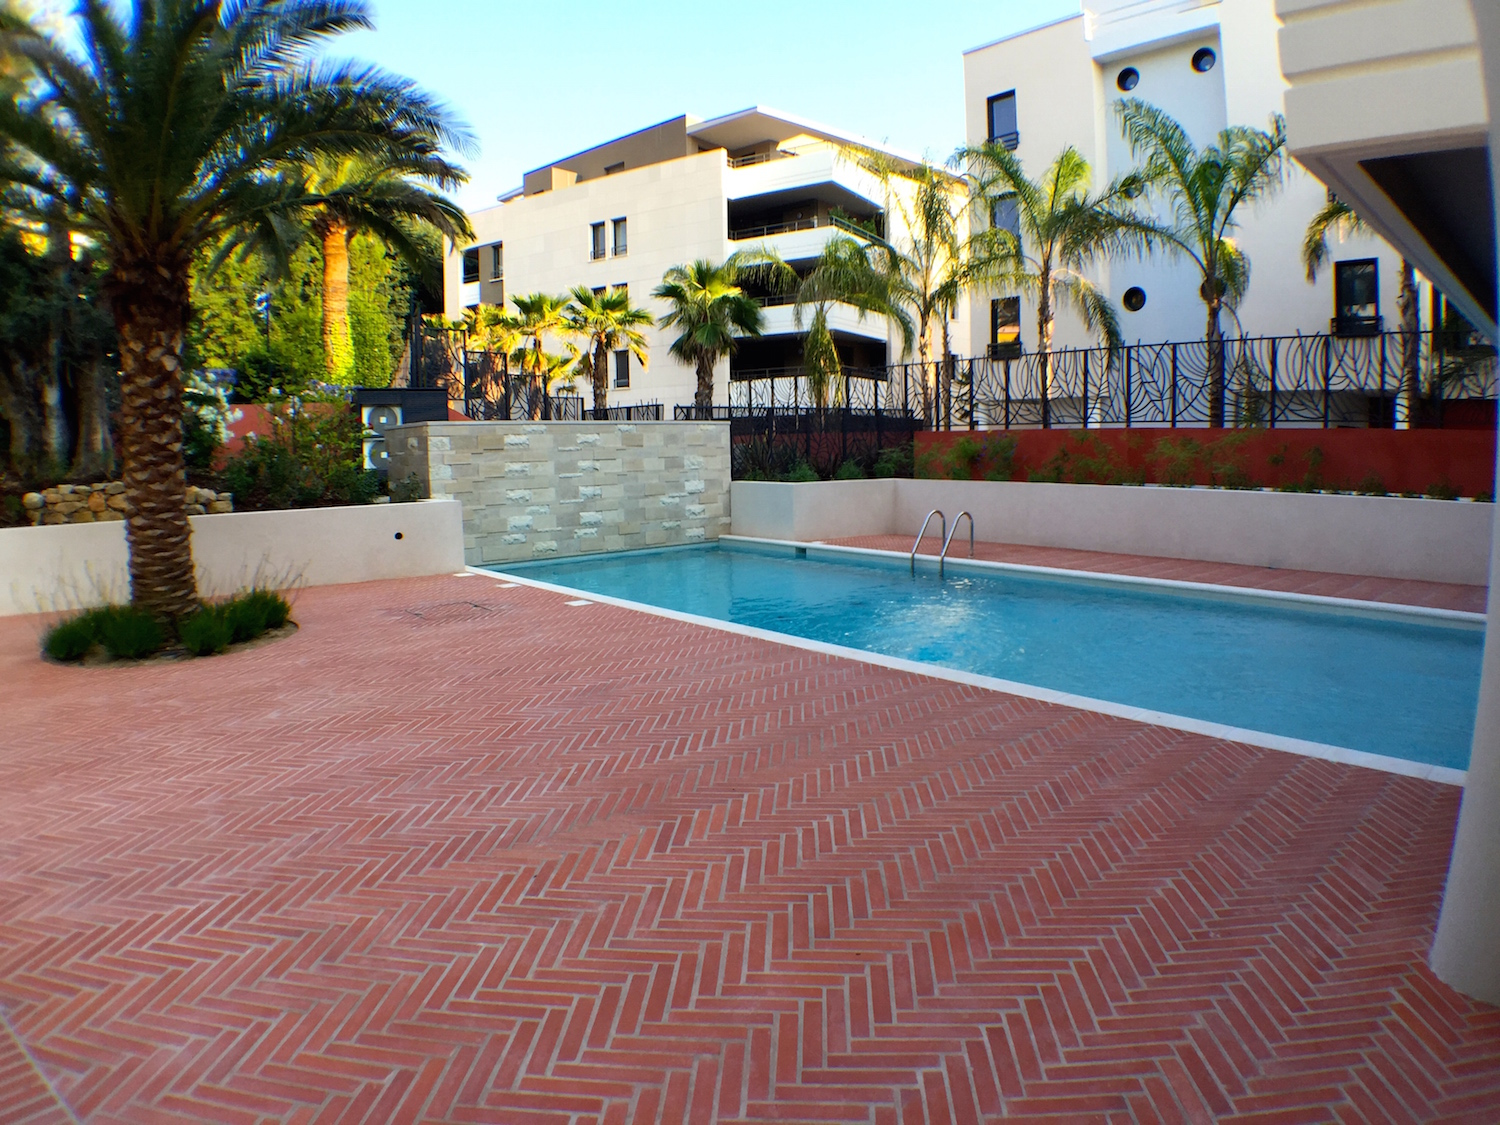 Three bedroom apartment with swimming pool & jacuzzi